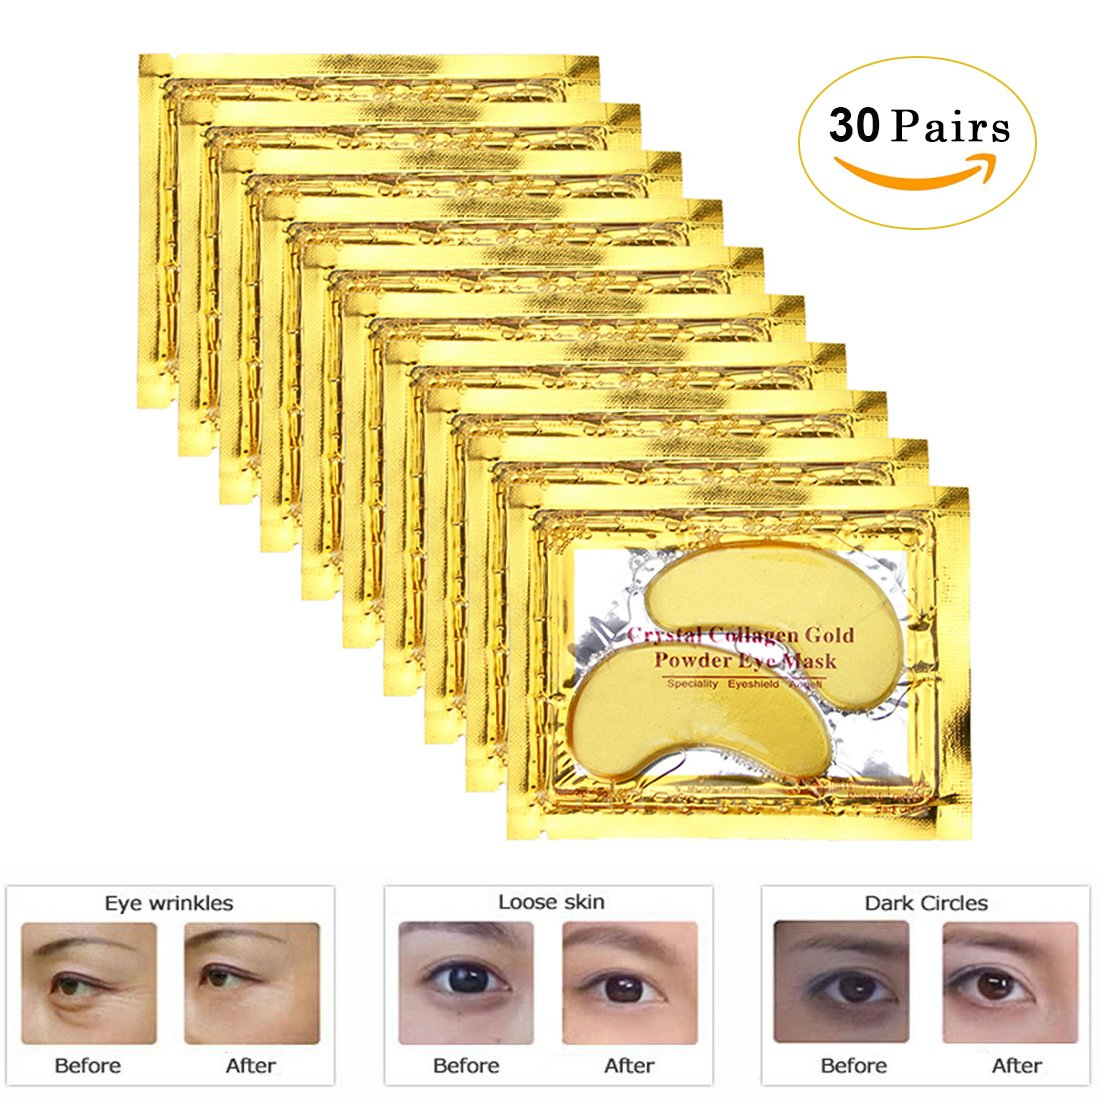 Genuva Gold Eye Mask Power Crystal Gel Collagen Masks For Anti Aging, Remove Bags, Anti Wrinkles, Moisturising, Hydrating, Dark Circles & Puffiness, 30 Pairs